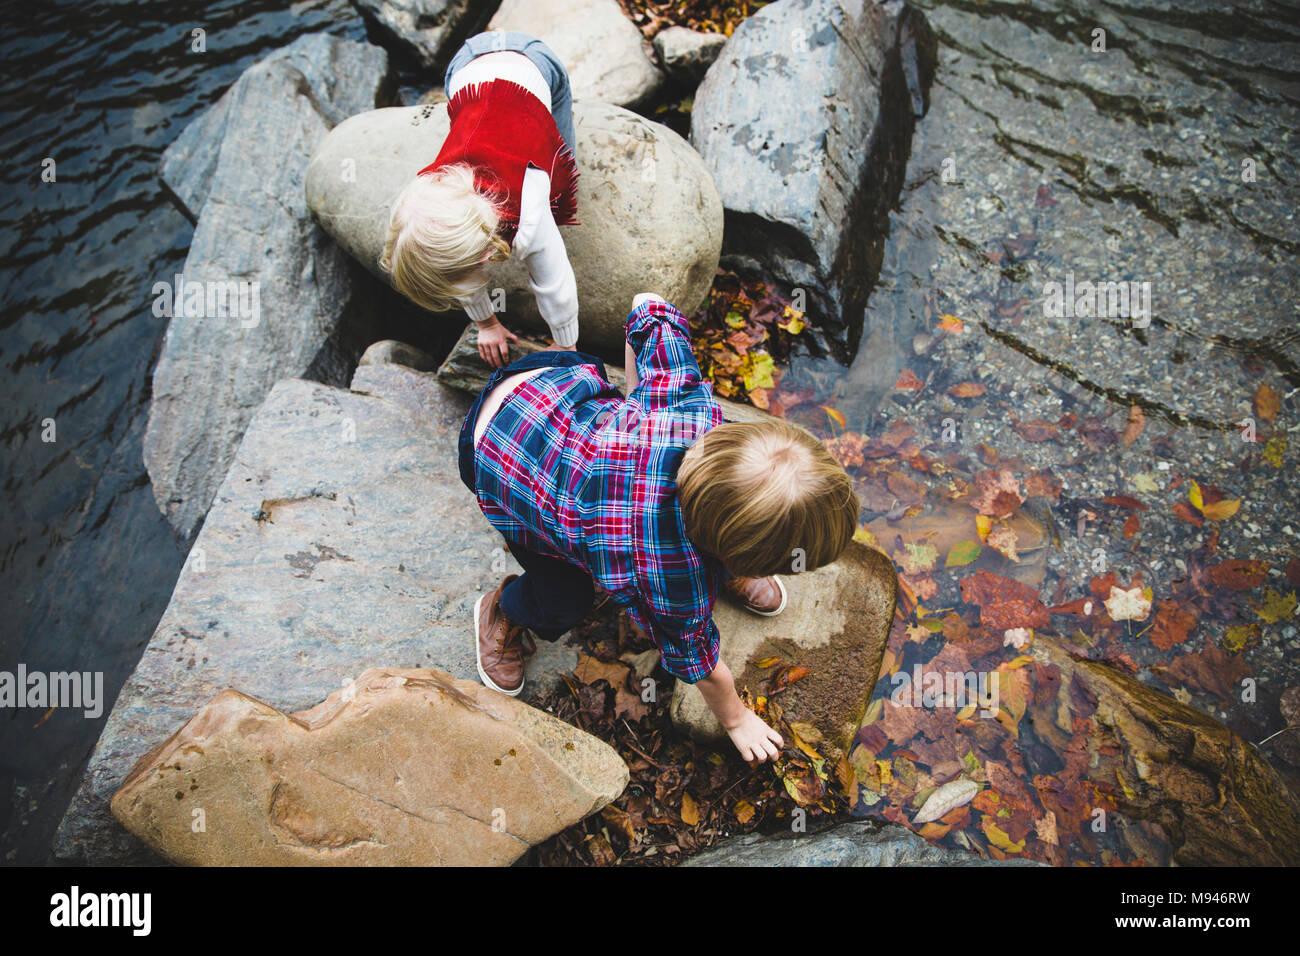 Children playing on rocks next to river - Stock Image